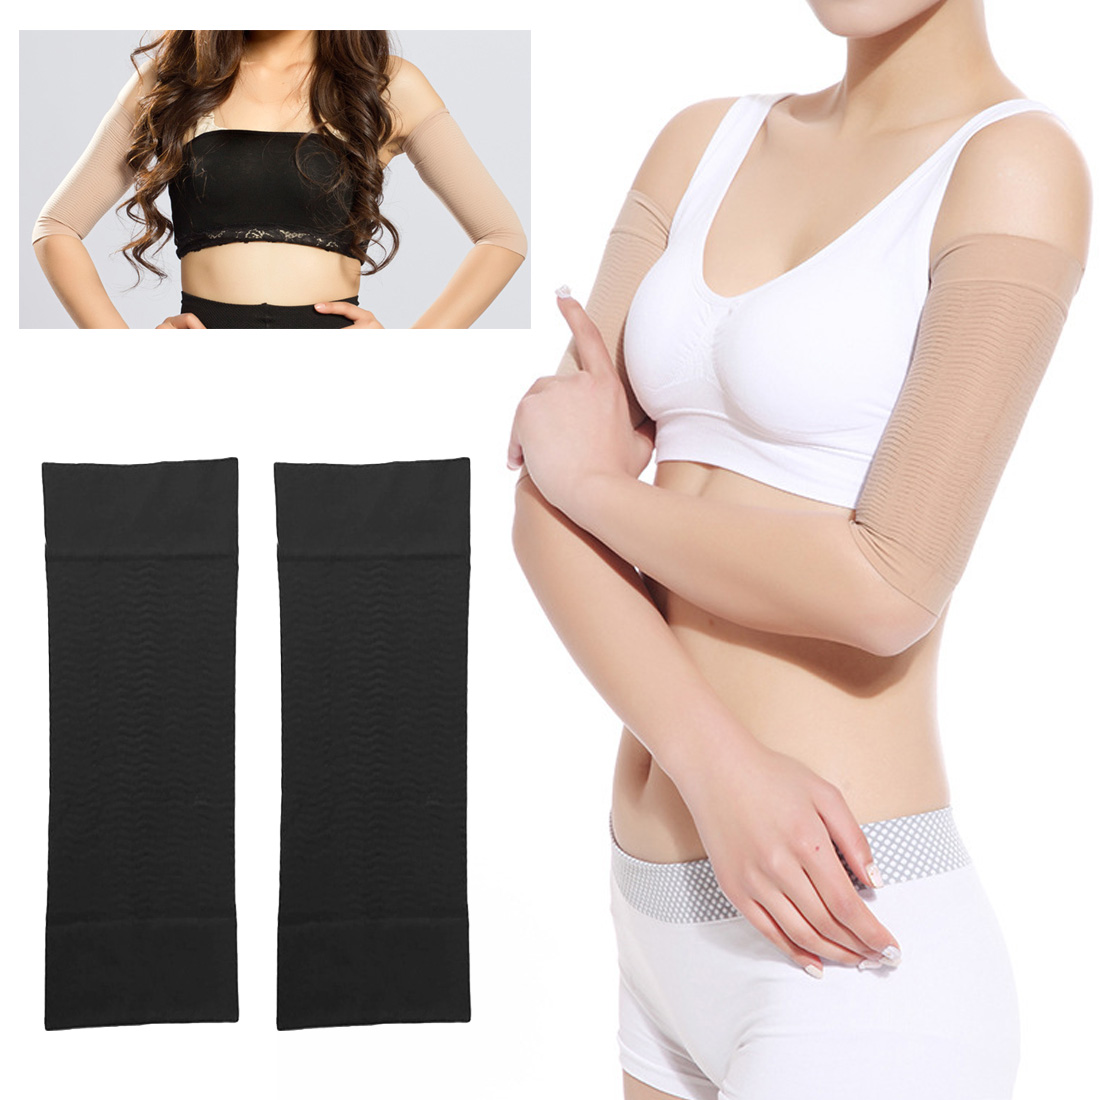 1Pair Women Arm Slimmer Sleeve Sauna Belt Arm Shaper Massager Sleeve Massage Arm Anti Cellulite Weight Loss Products Health Care